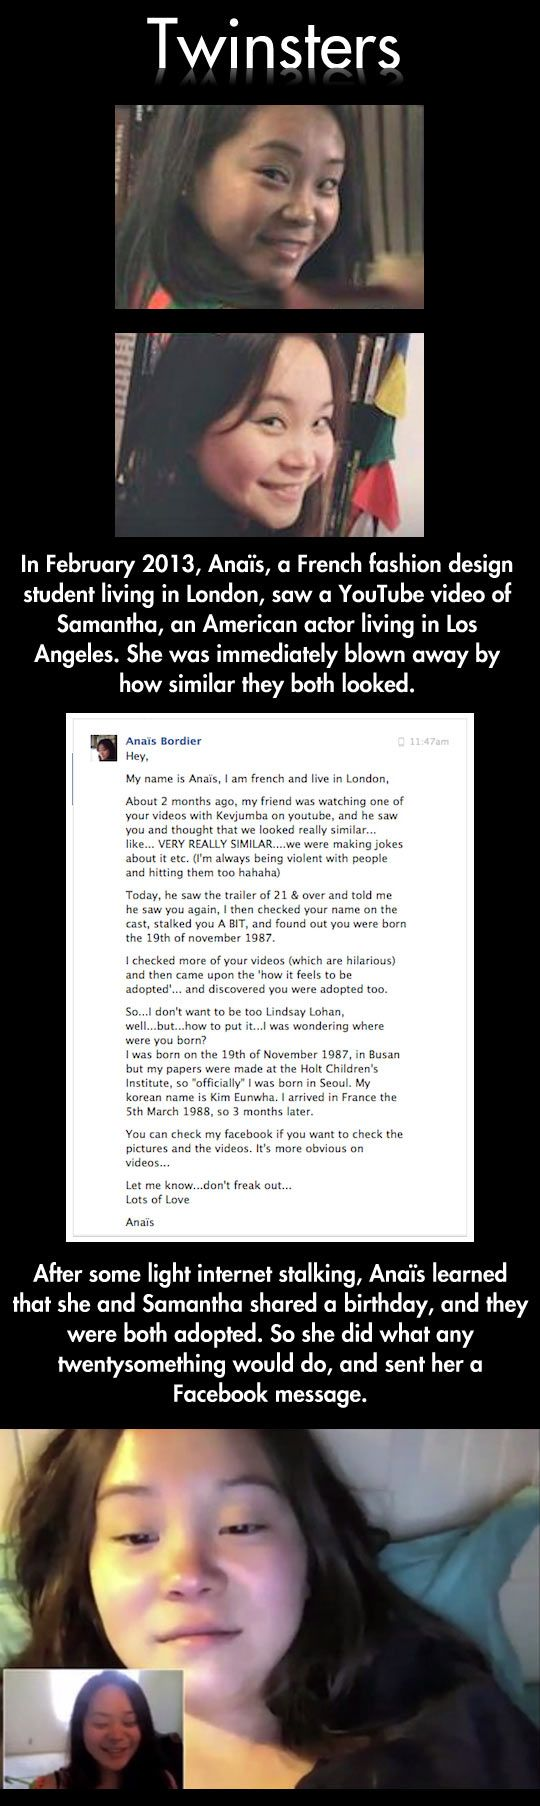 Truly amazing. Story continues in the link.